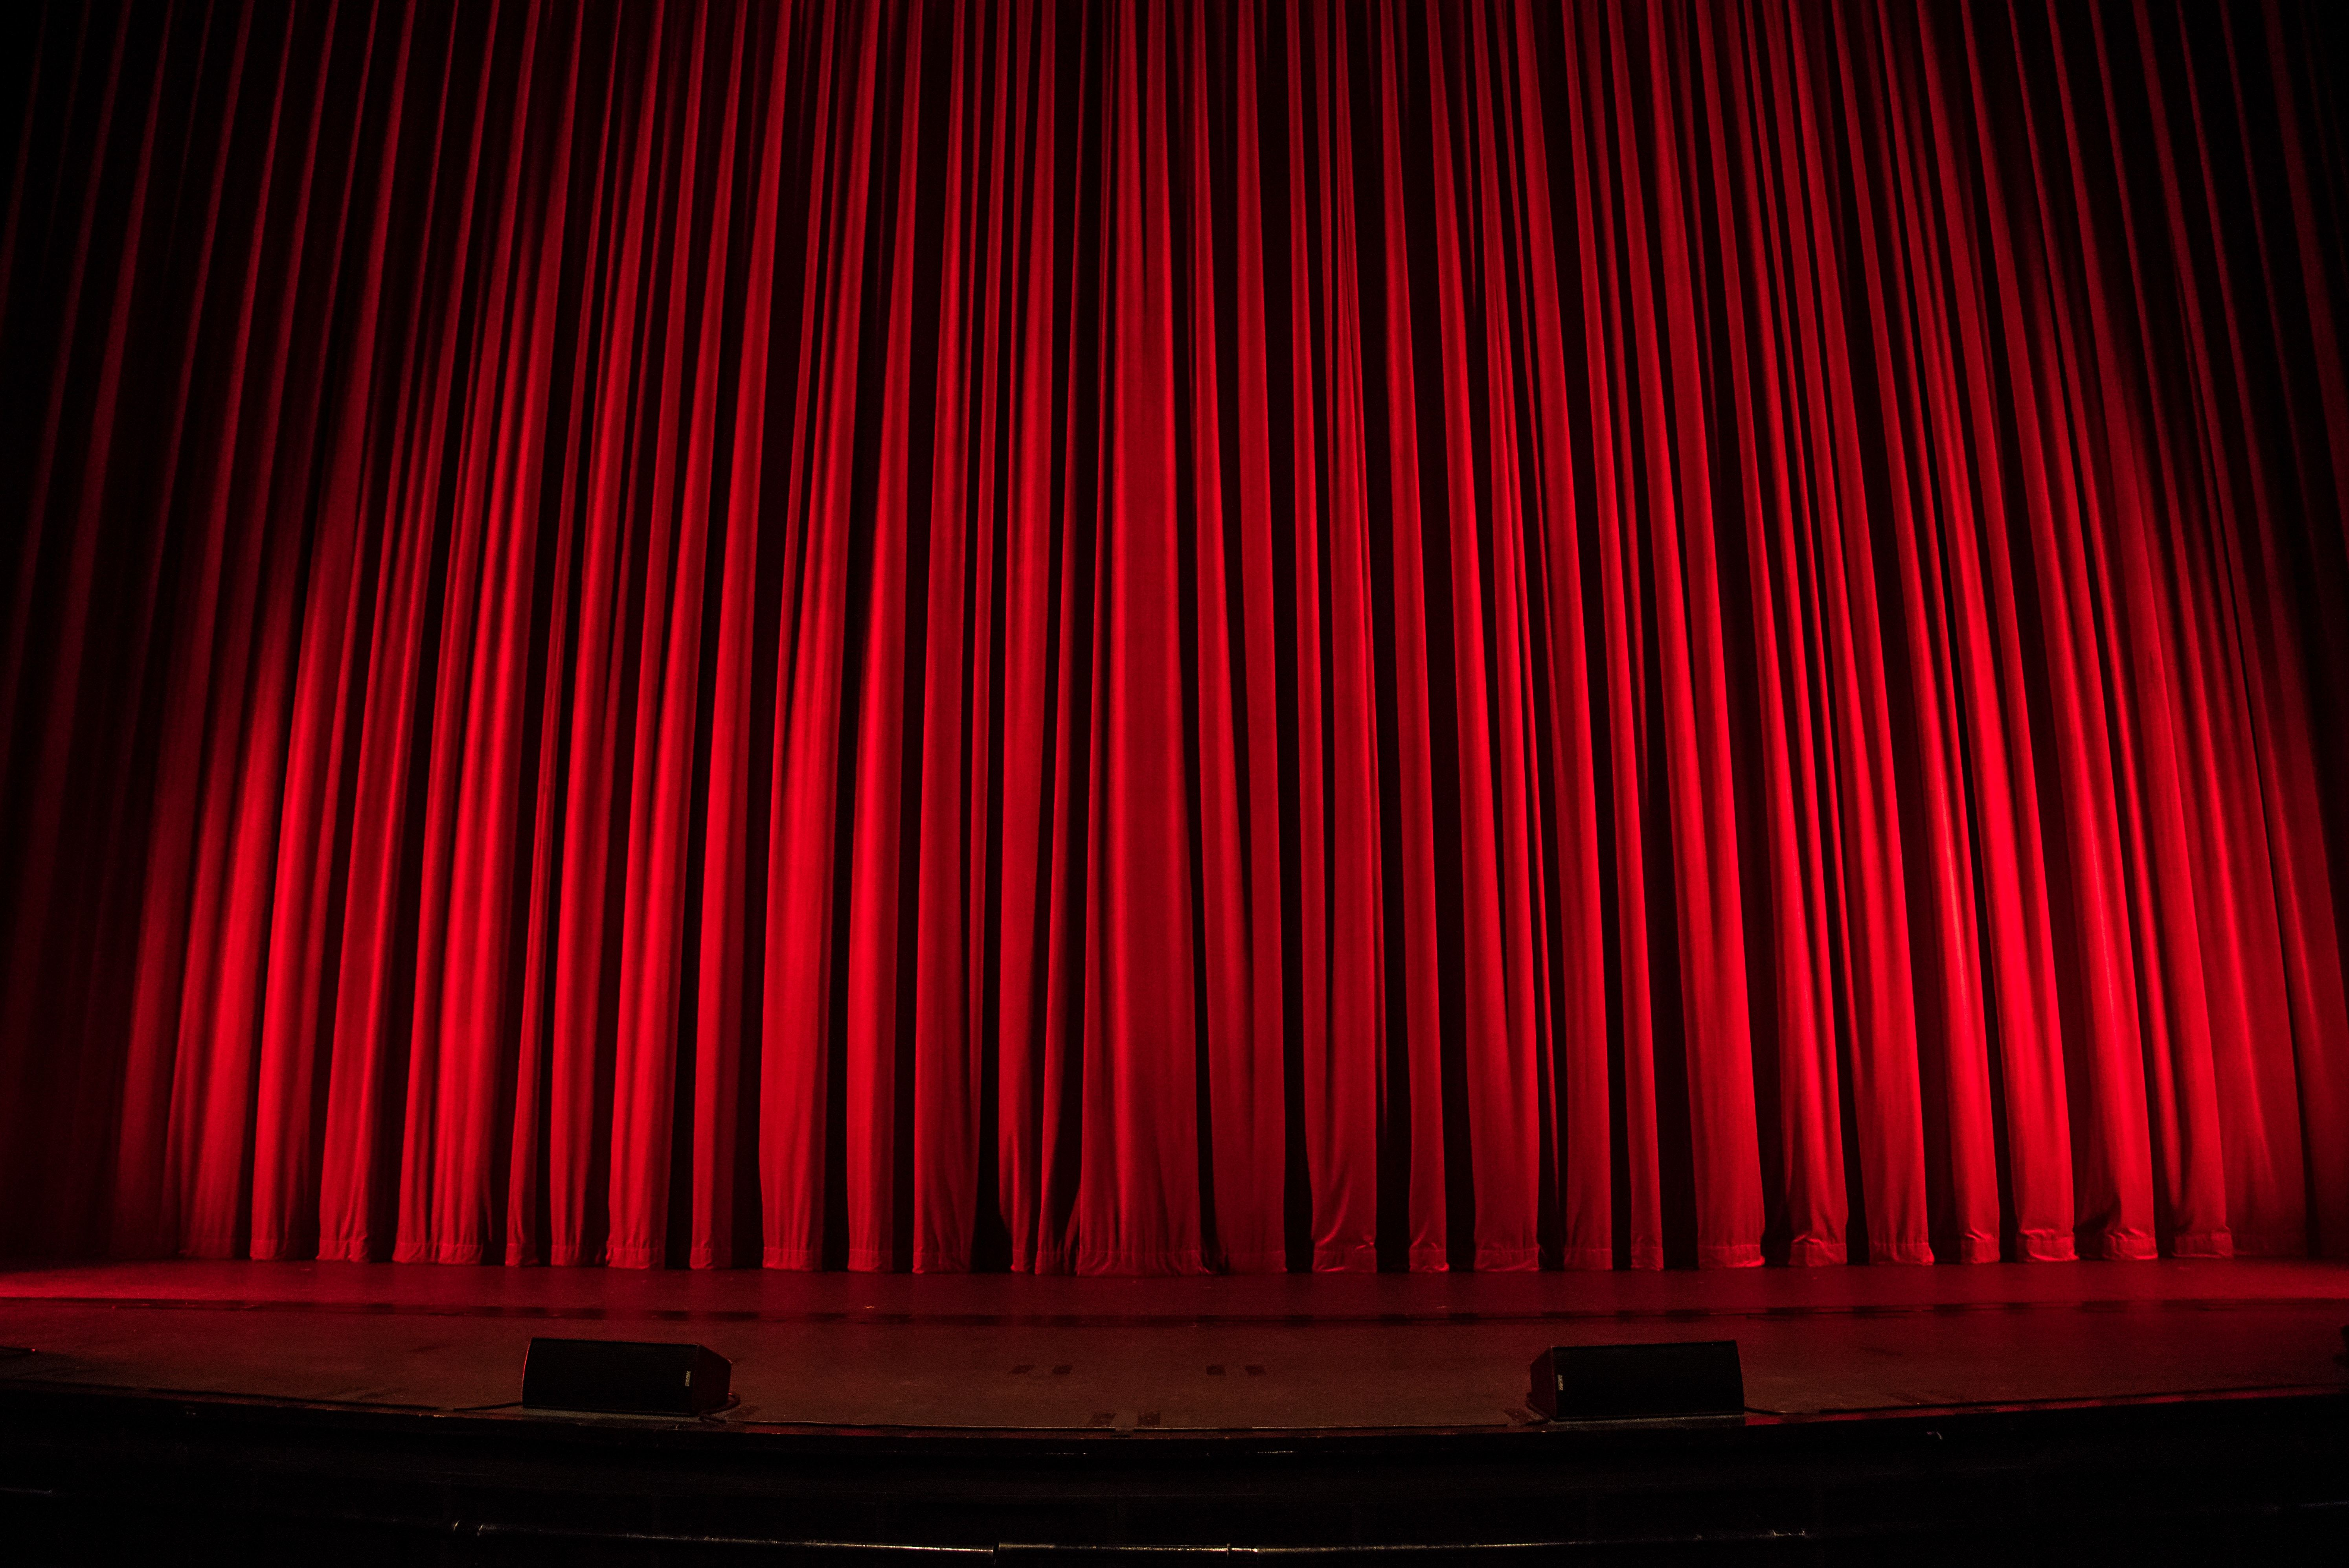 theater stage with red curtains drawn shut